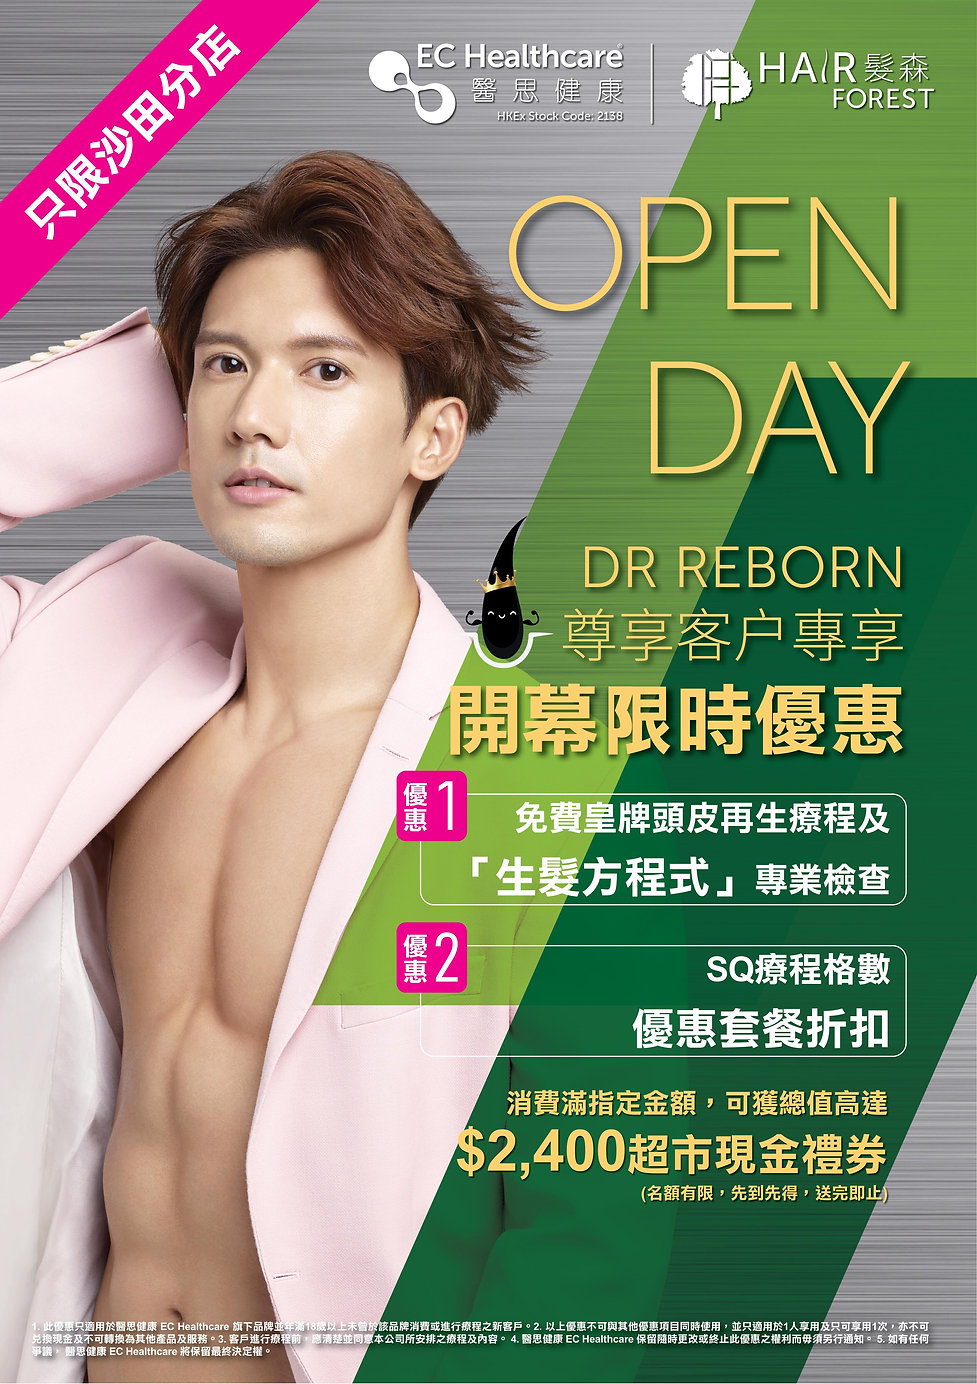 HAIR FOREST 只限沙田分店 Open day A1 foamboard